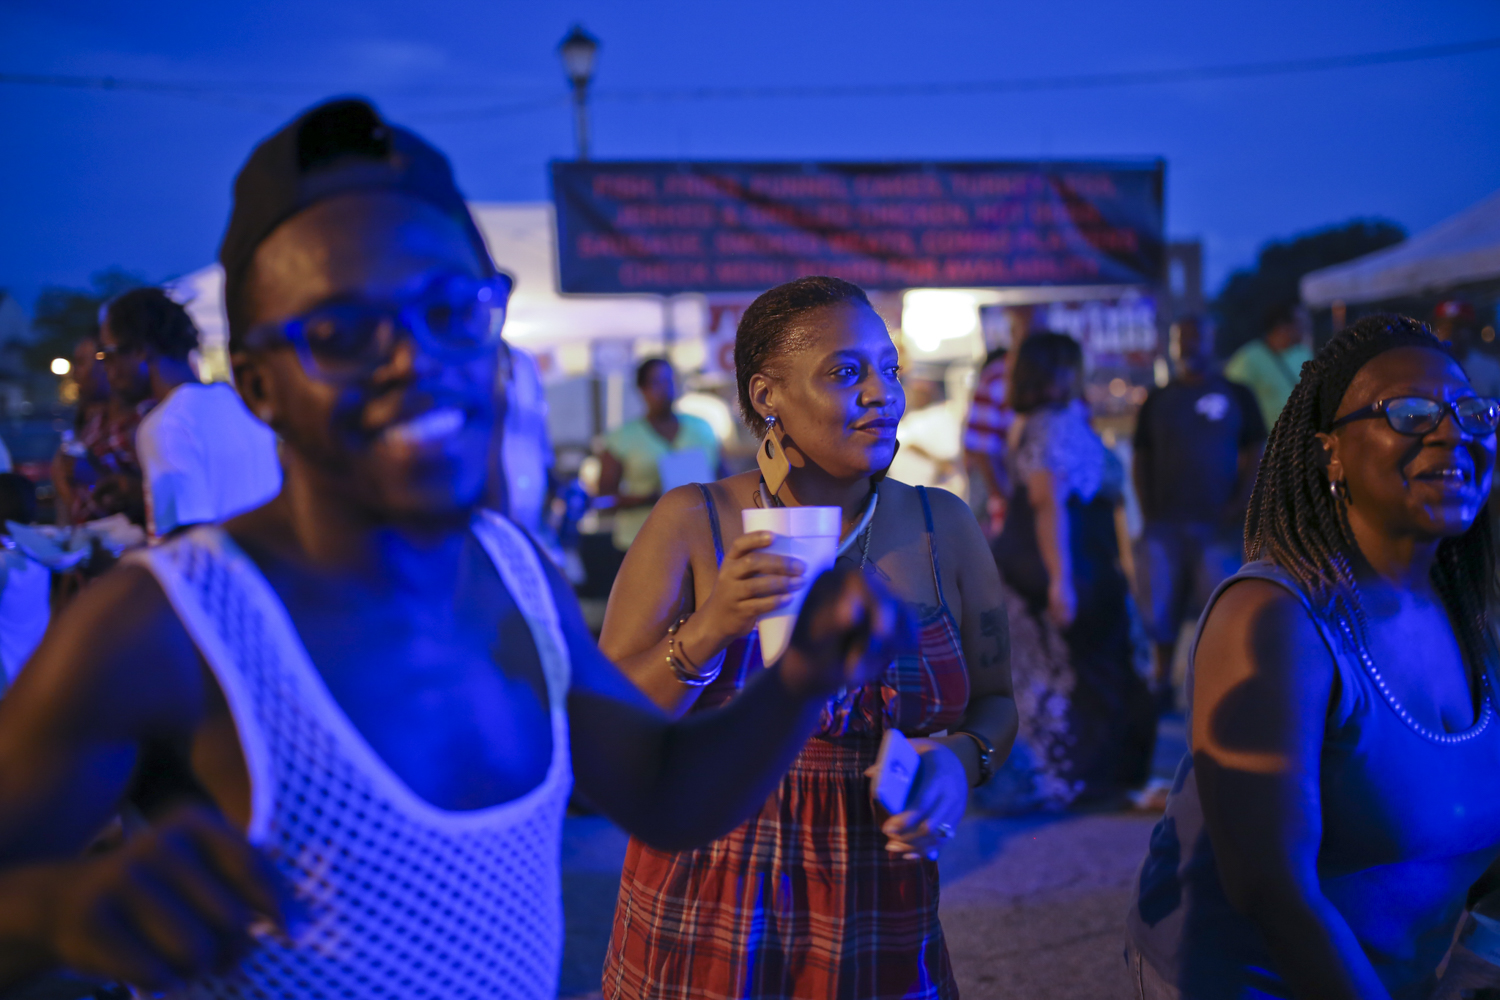 Friends, from left, Ryan Jones from Petersburg, Nikki Brown from Petersburg, and Sinnie Goodman from Petersburg, dance to a DJ at the 11th annual Halifax Music Festival in Petersburg on Friday, July 14, 2017. [Scott P. Yates/progress-index.com]